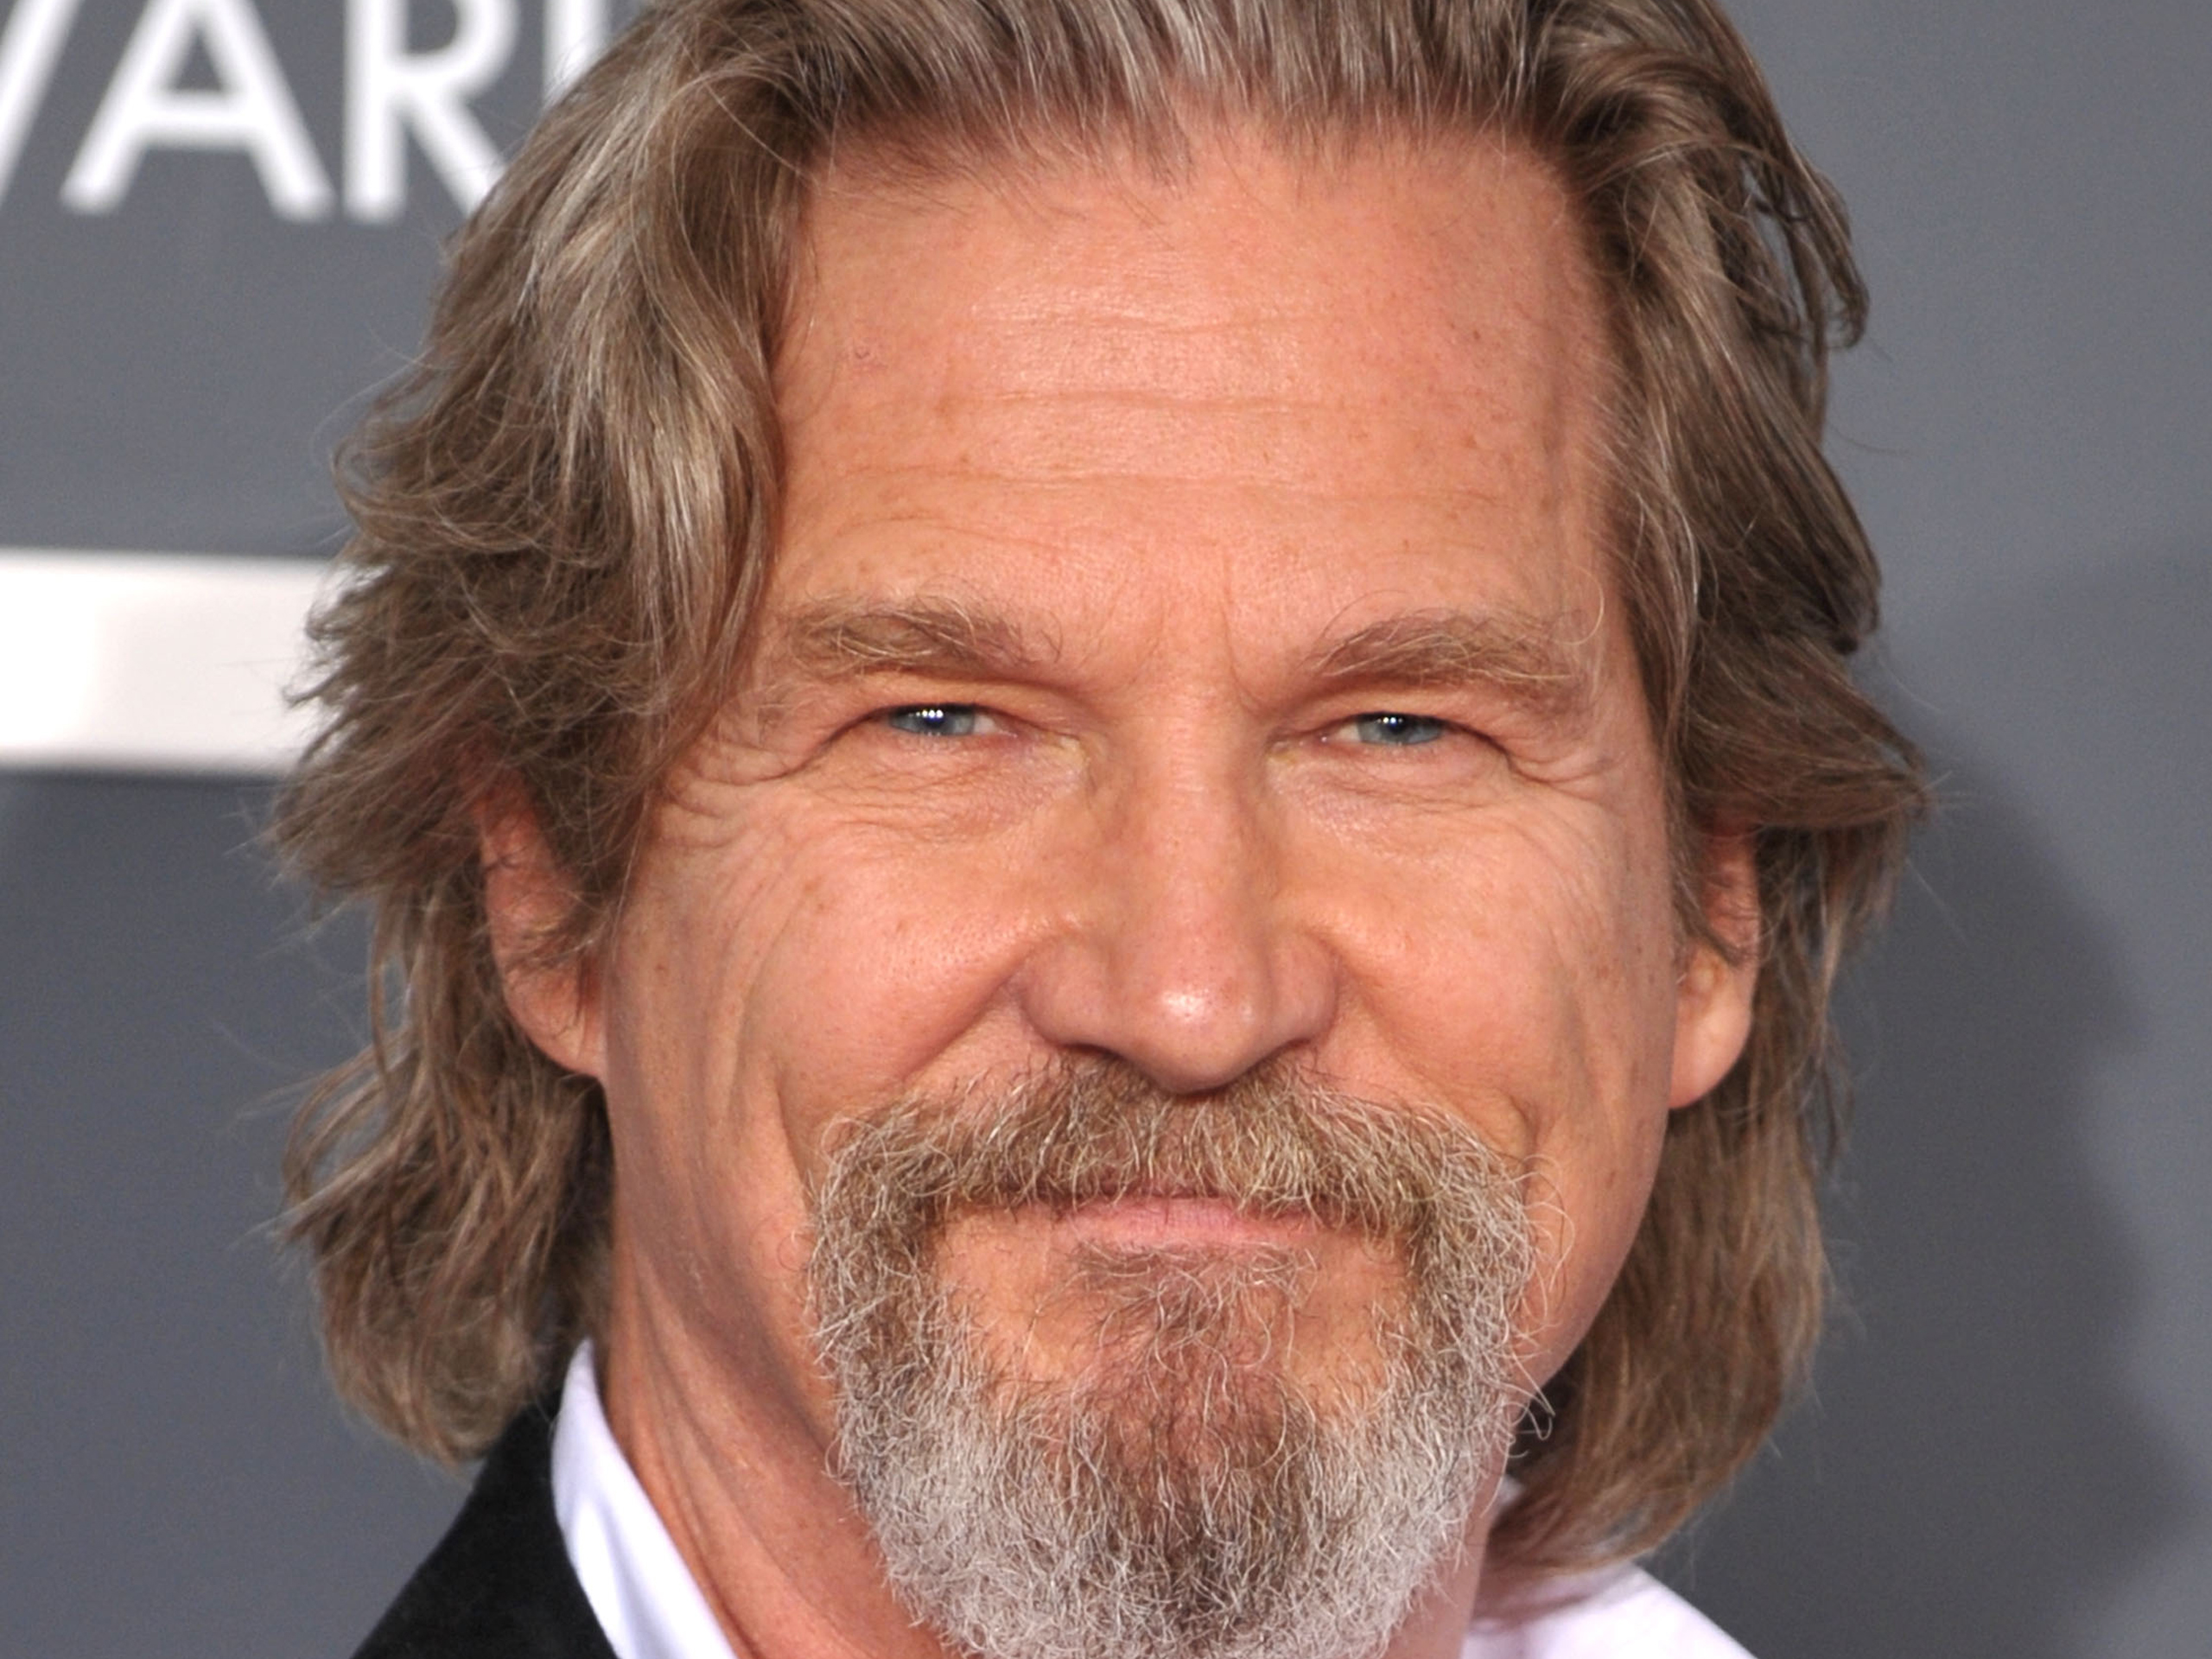 Jeff Bridges Wallpaper 7   2560 X 1920 stmednet 2560x1920